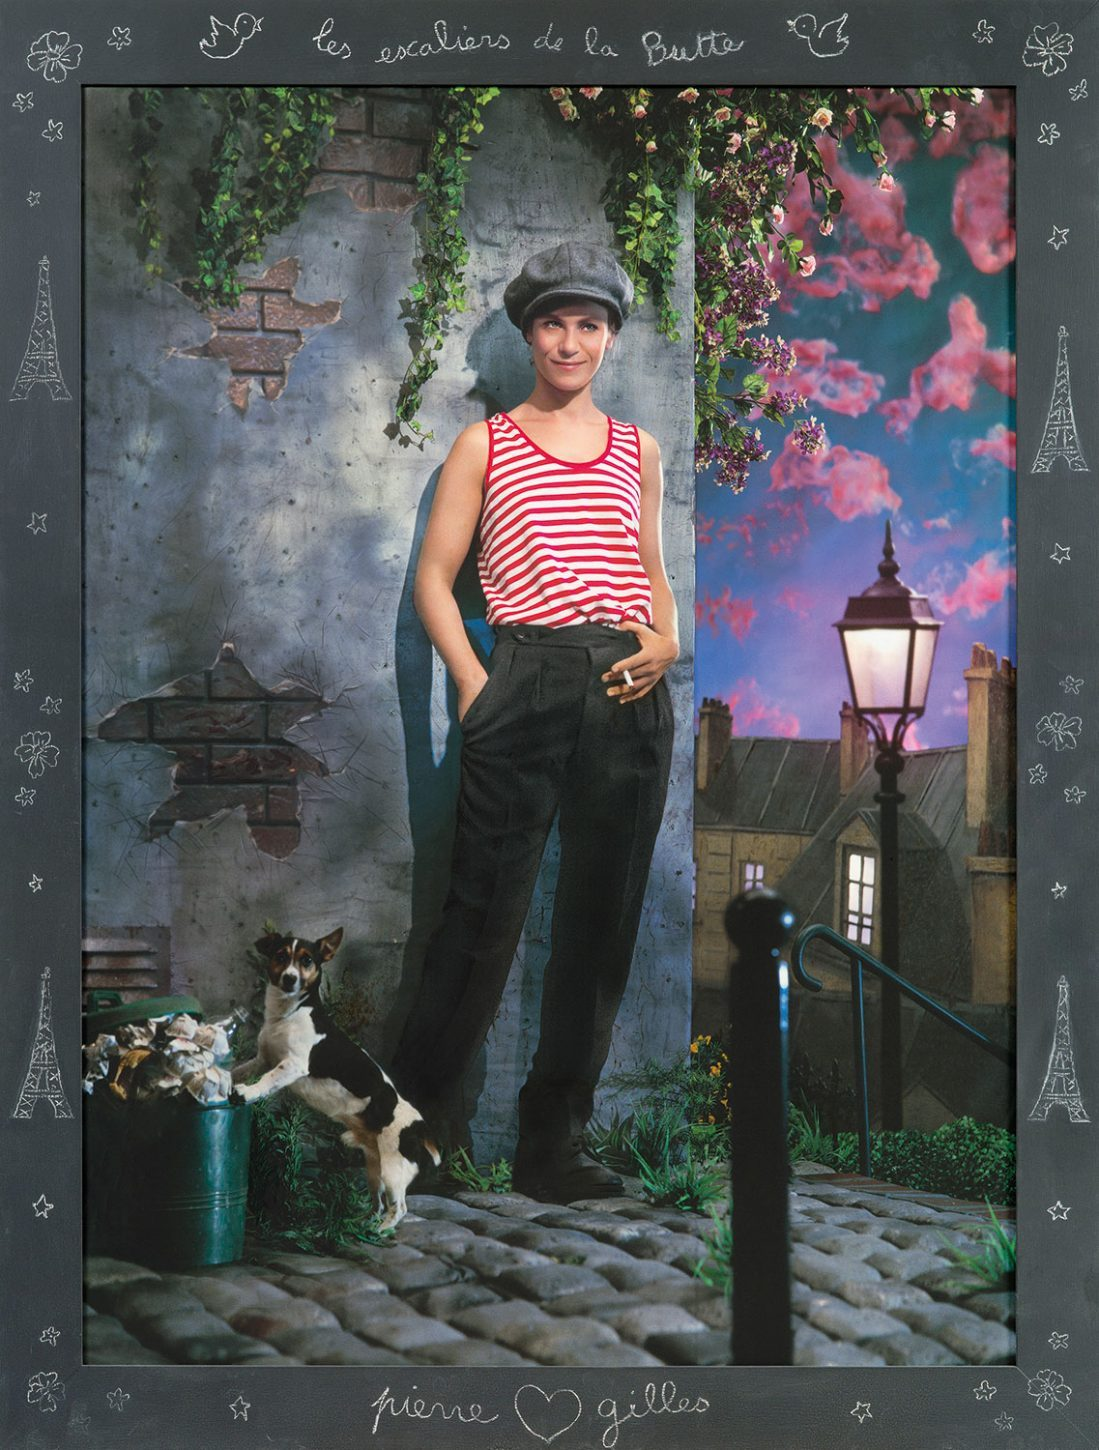 interview-exclusive-pierre-gilles-photographe-retro-kitsch-escaliers-de-la-butte-paris-capitale